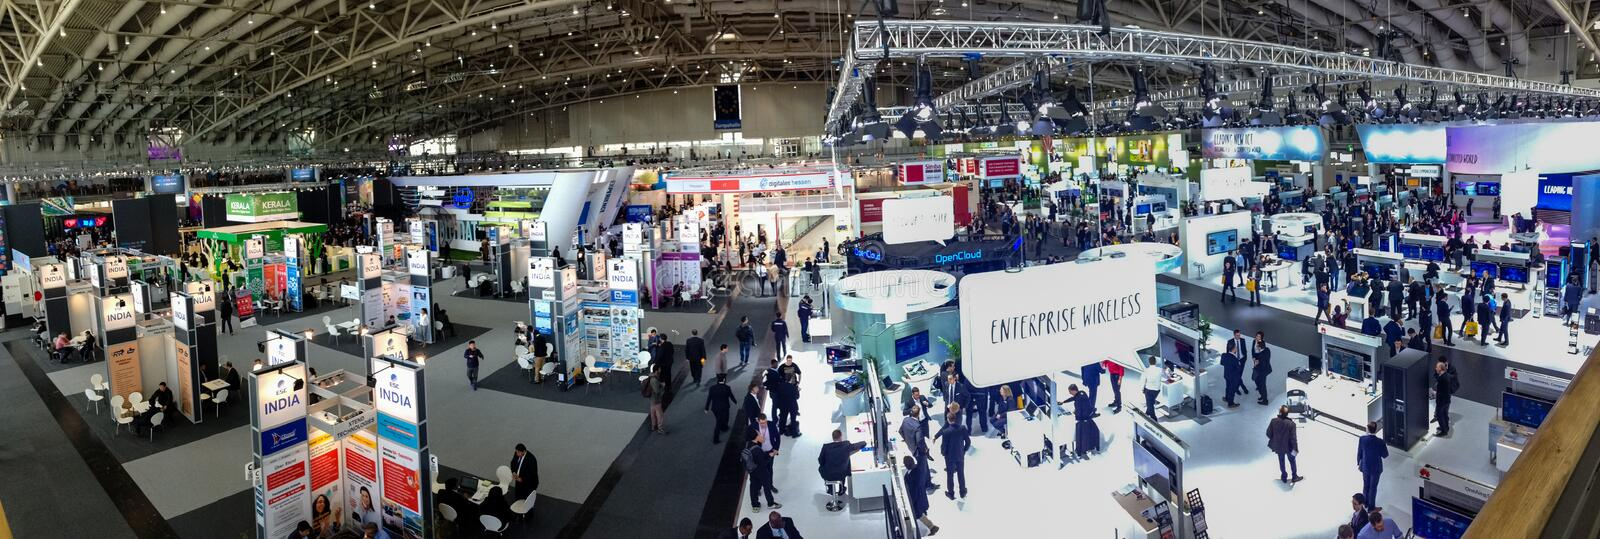 Hall 2 at CeBIT information technology trade show. HANNOVER, GERMANY - MARCH 15, 2016: Hall 2 at CeBIT information technology trade show in Hannover, Germany on royalty free stock photography